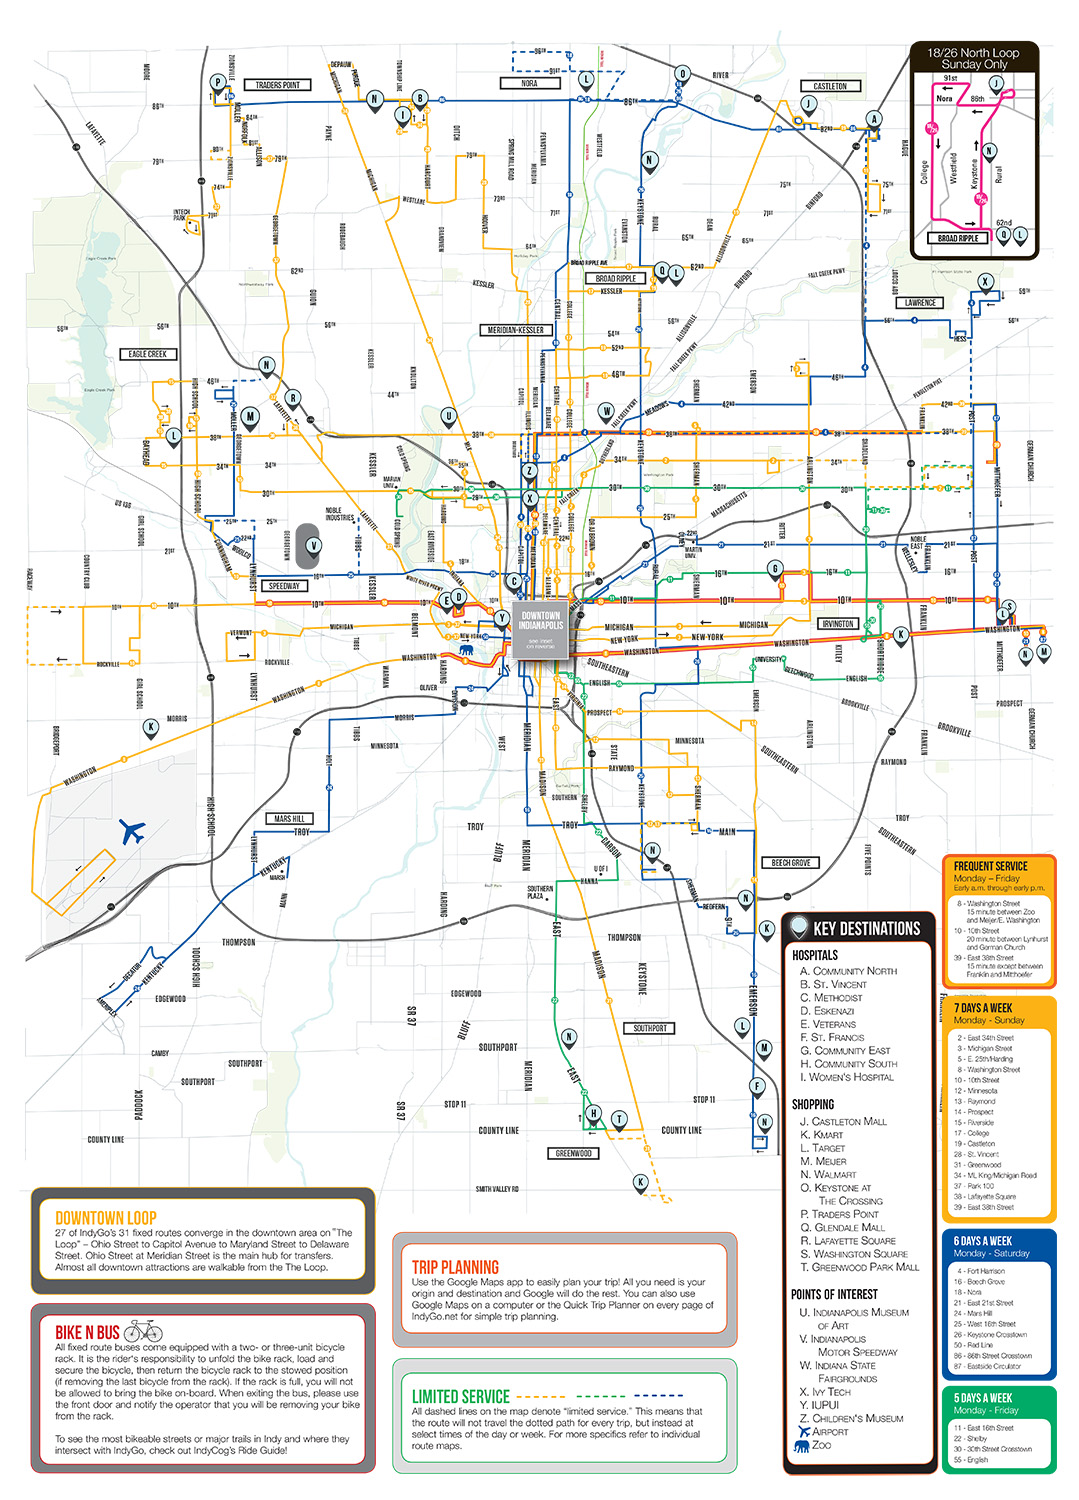 Indygo Seeks Your Input On Moving Forward Urban Indy